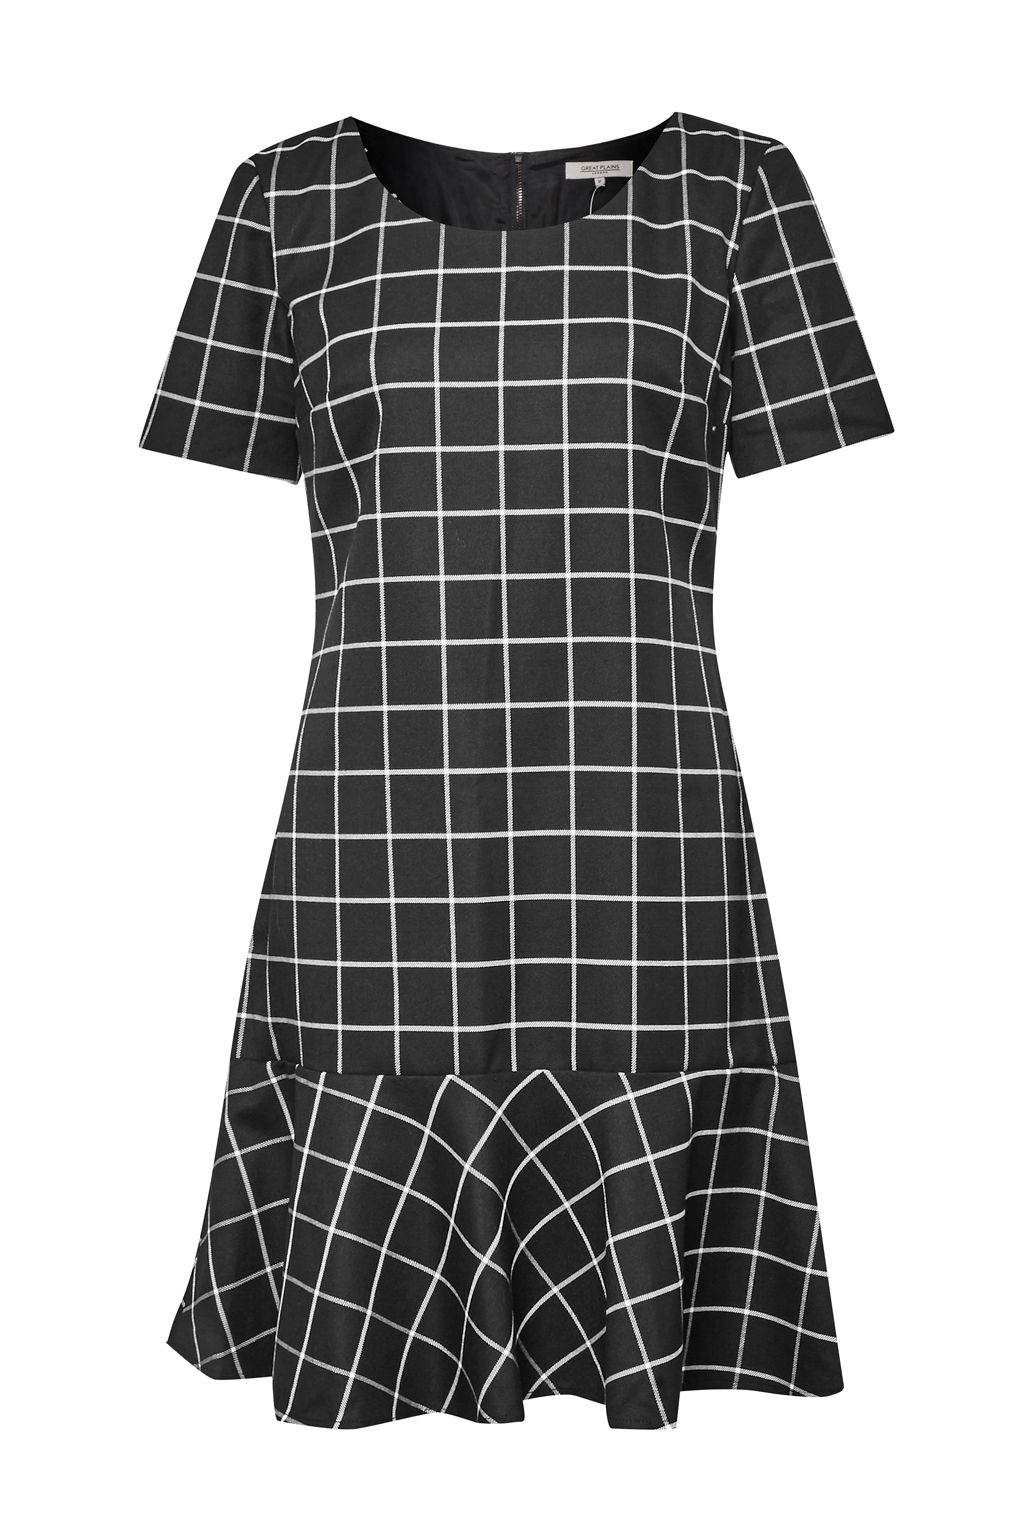 Great Plains Great Plains Herringbone Check Dress, Black